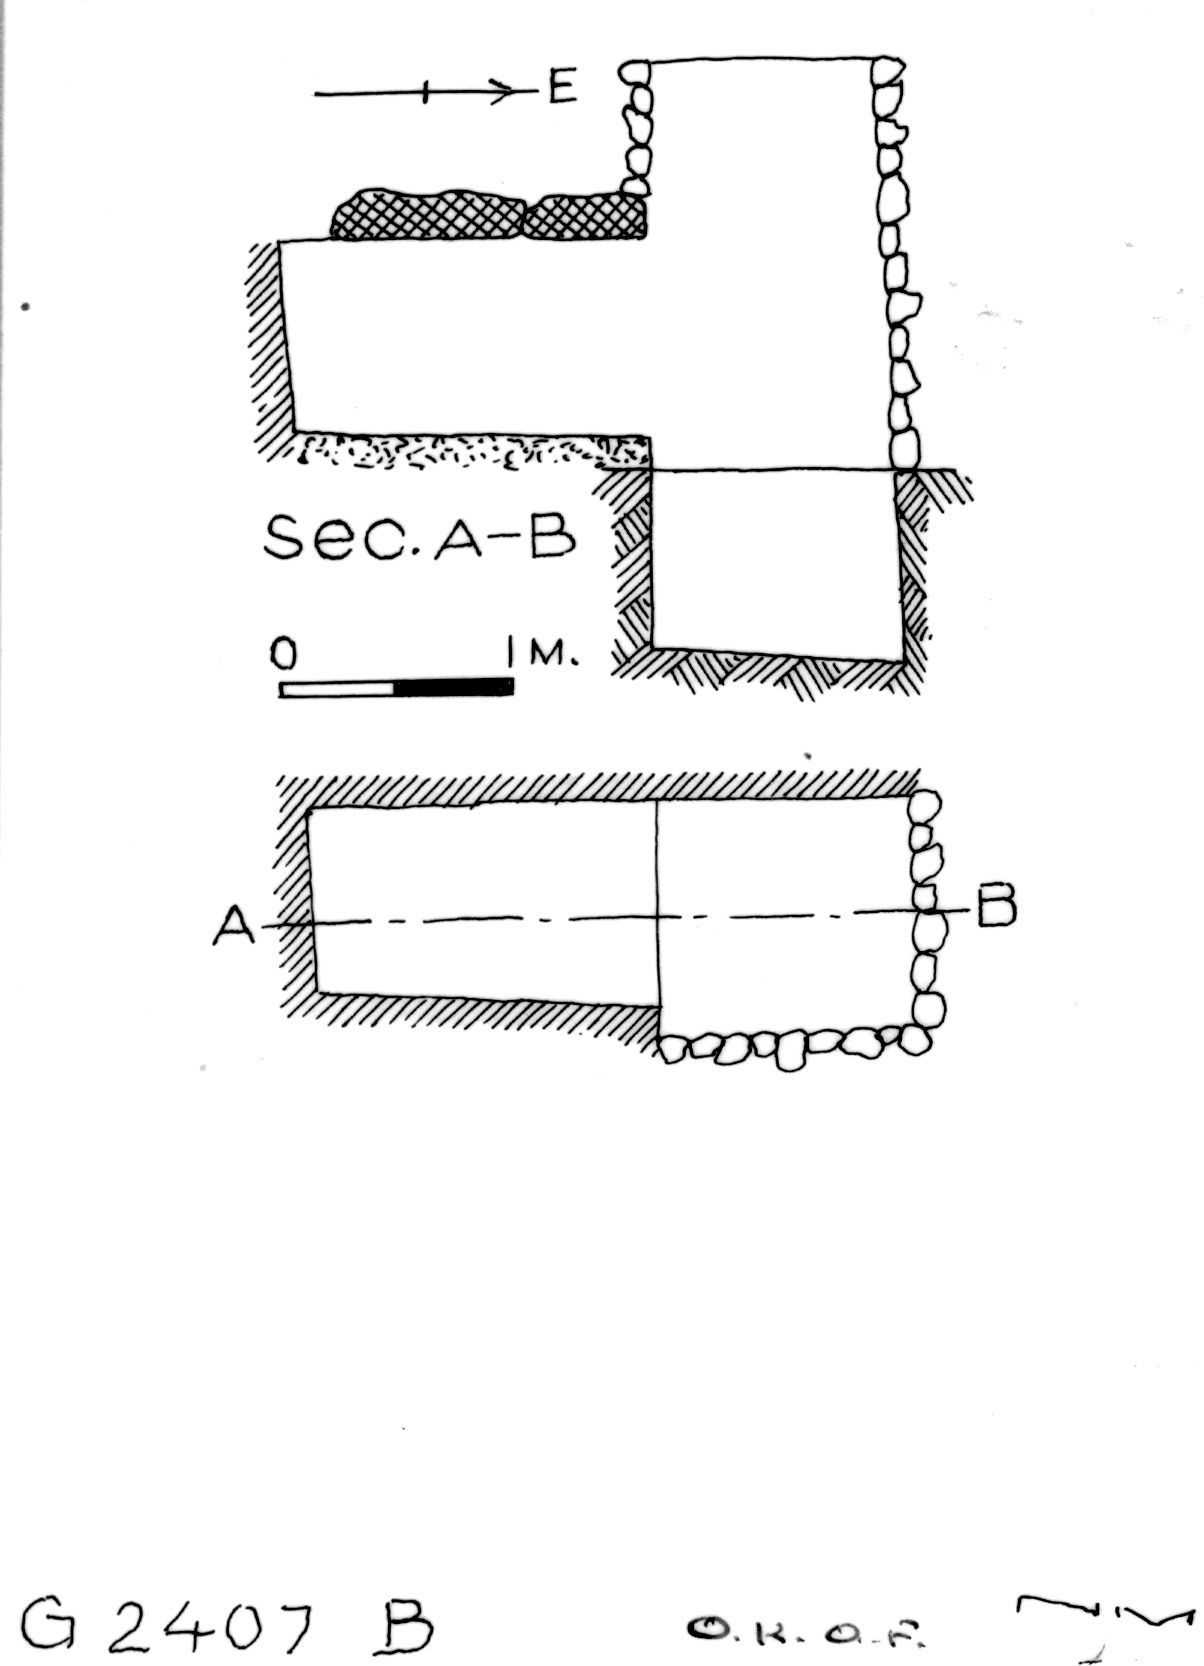 Maps and plans: G 2407, Shaft B